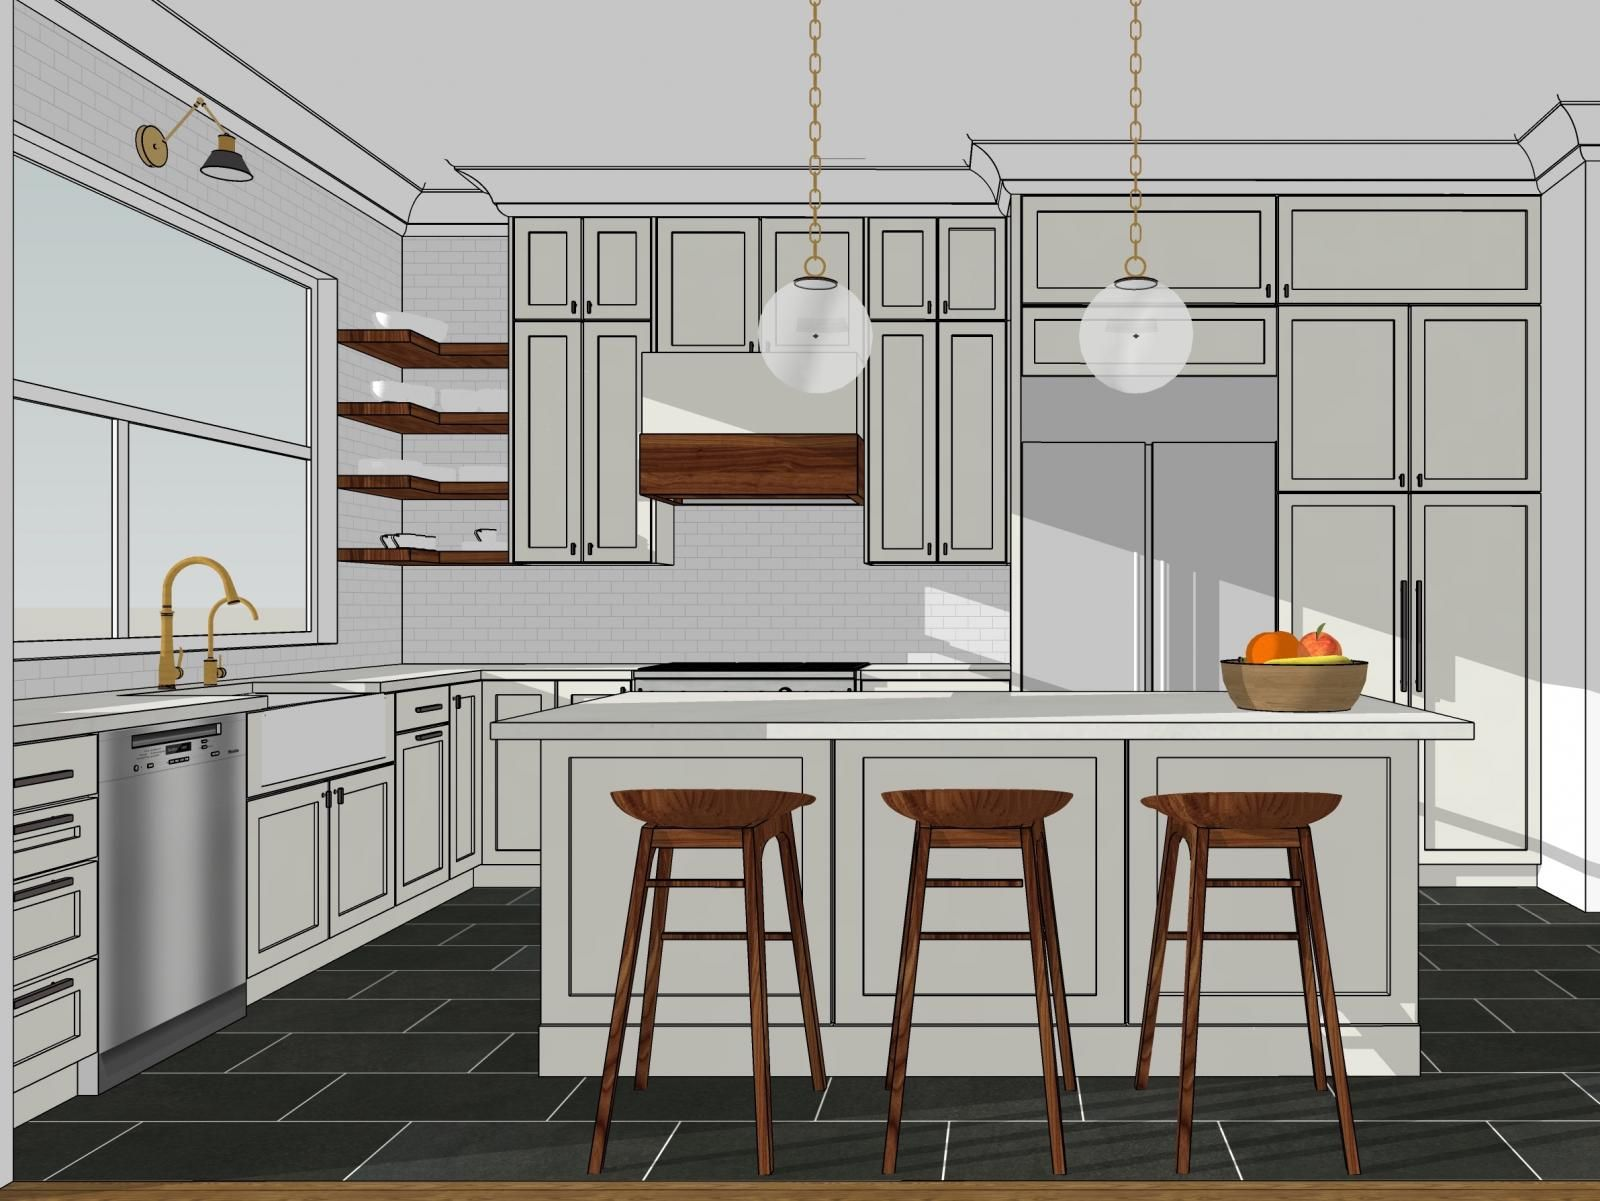 Clean, bright kitchen modeled in SketchUp | SketchUp Tips ...